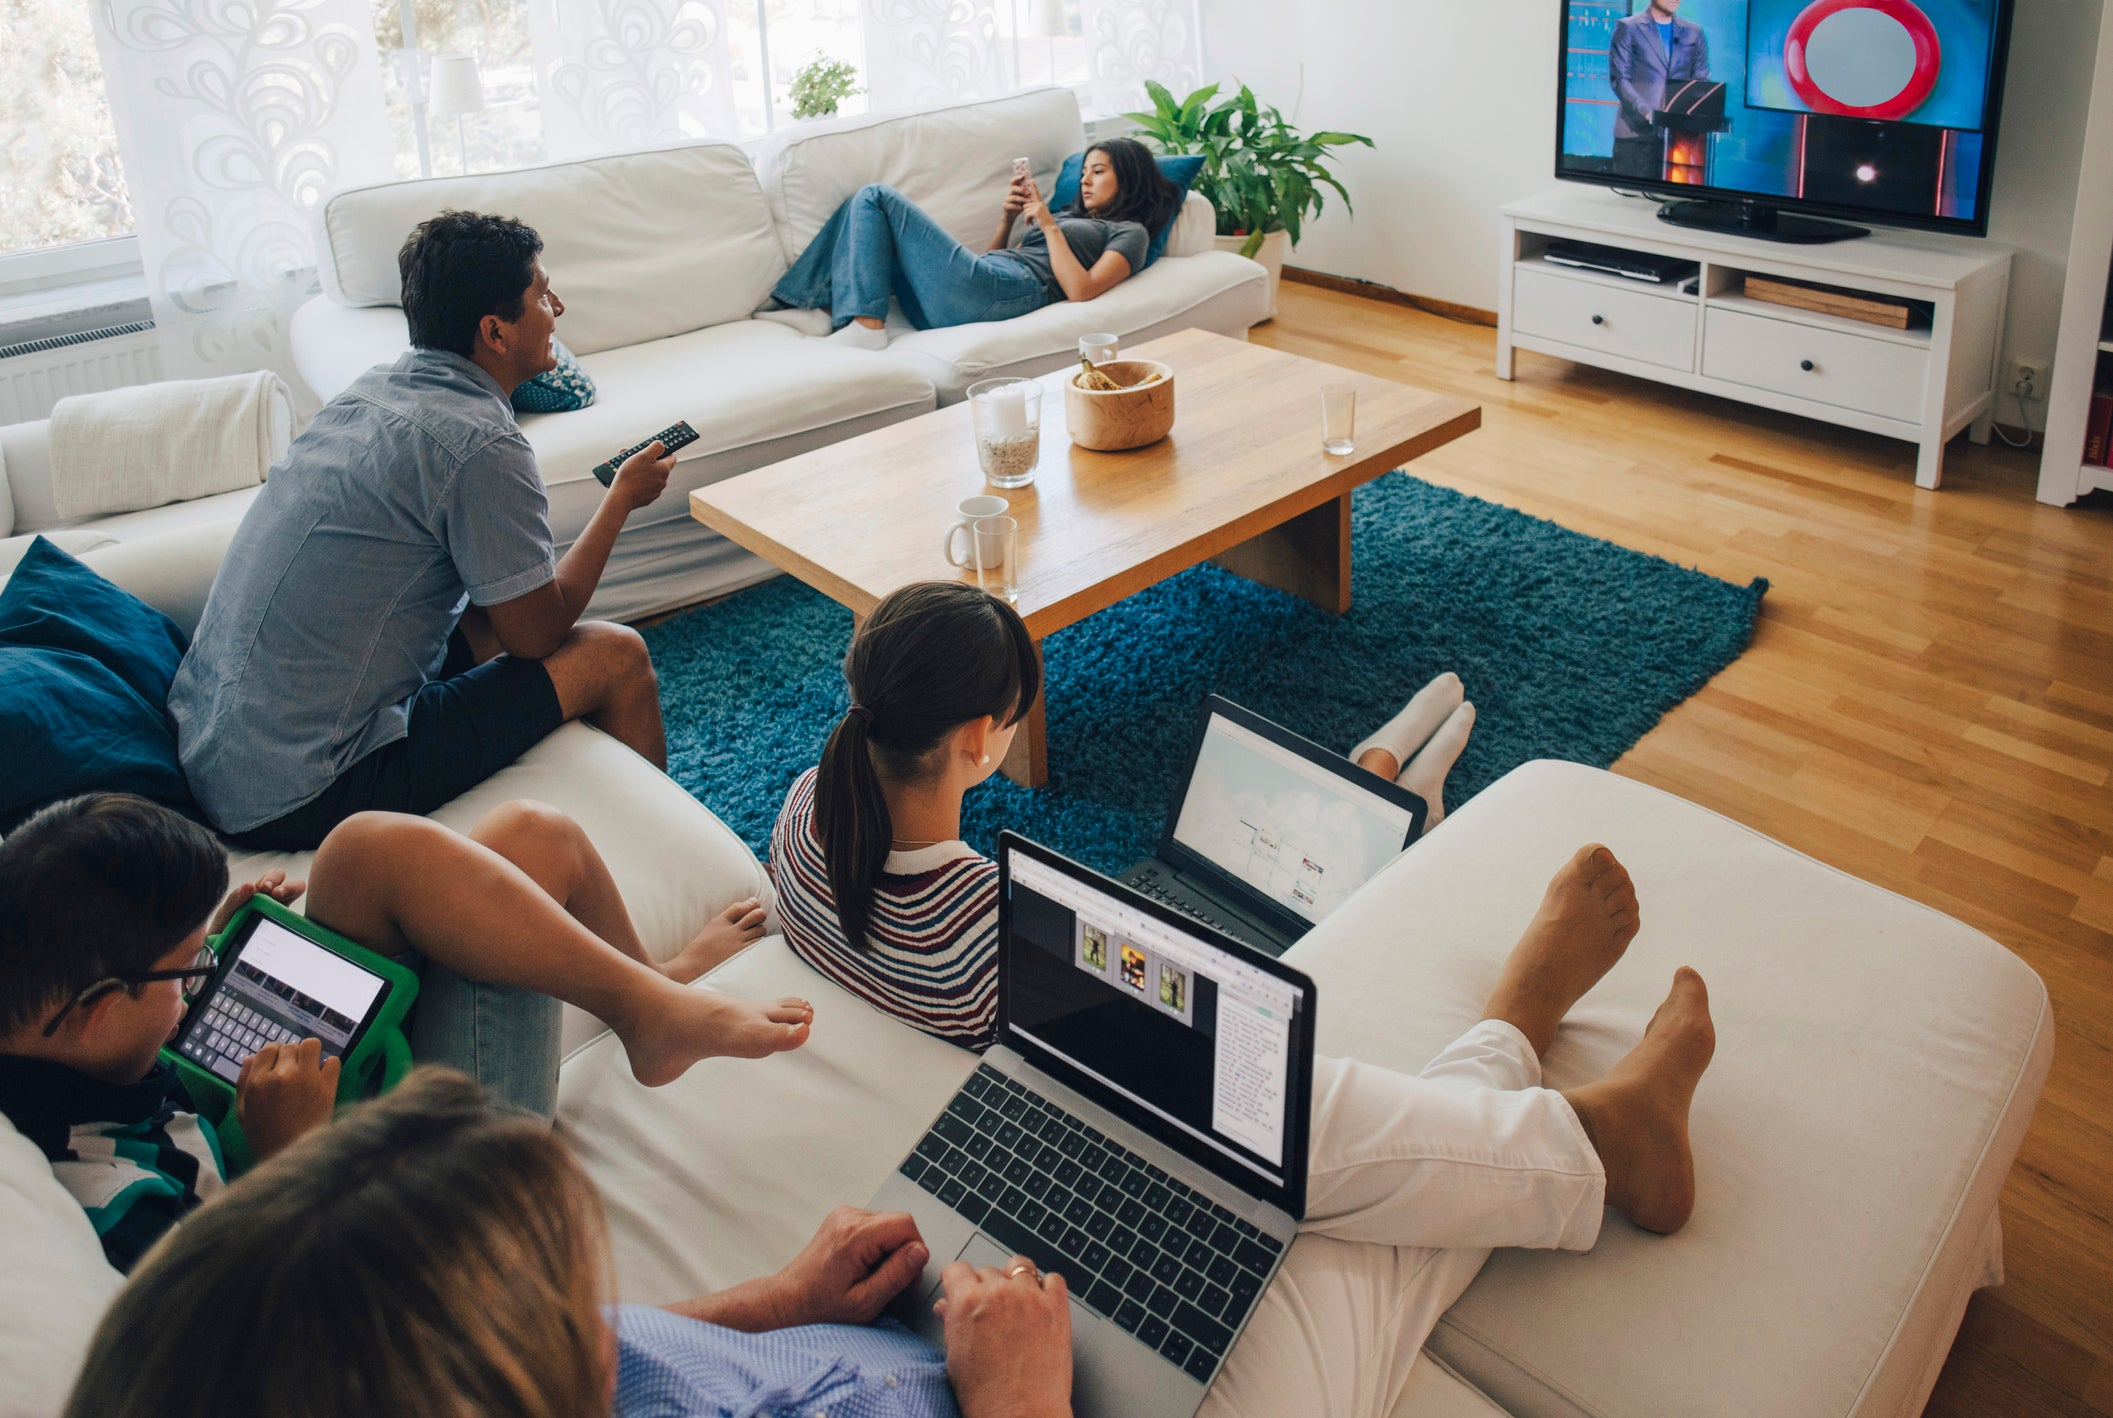 66.7% of U.S. Consumers Don't Care Whether Or Not Their Smart Home Devices are Recording All the Time